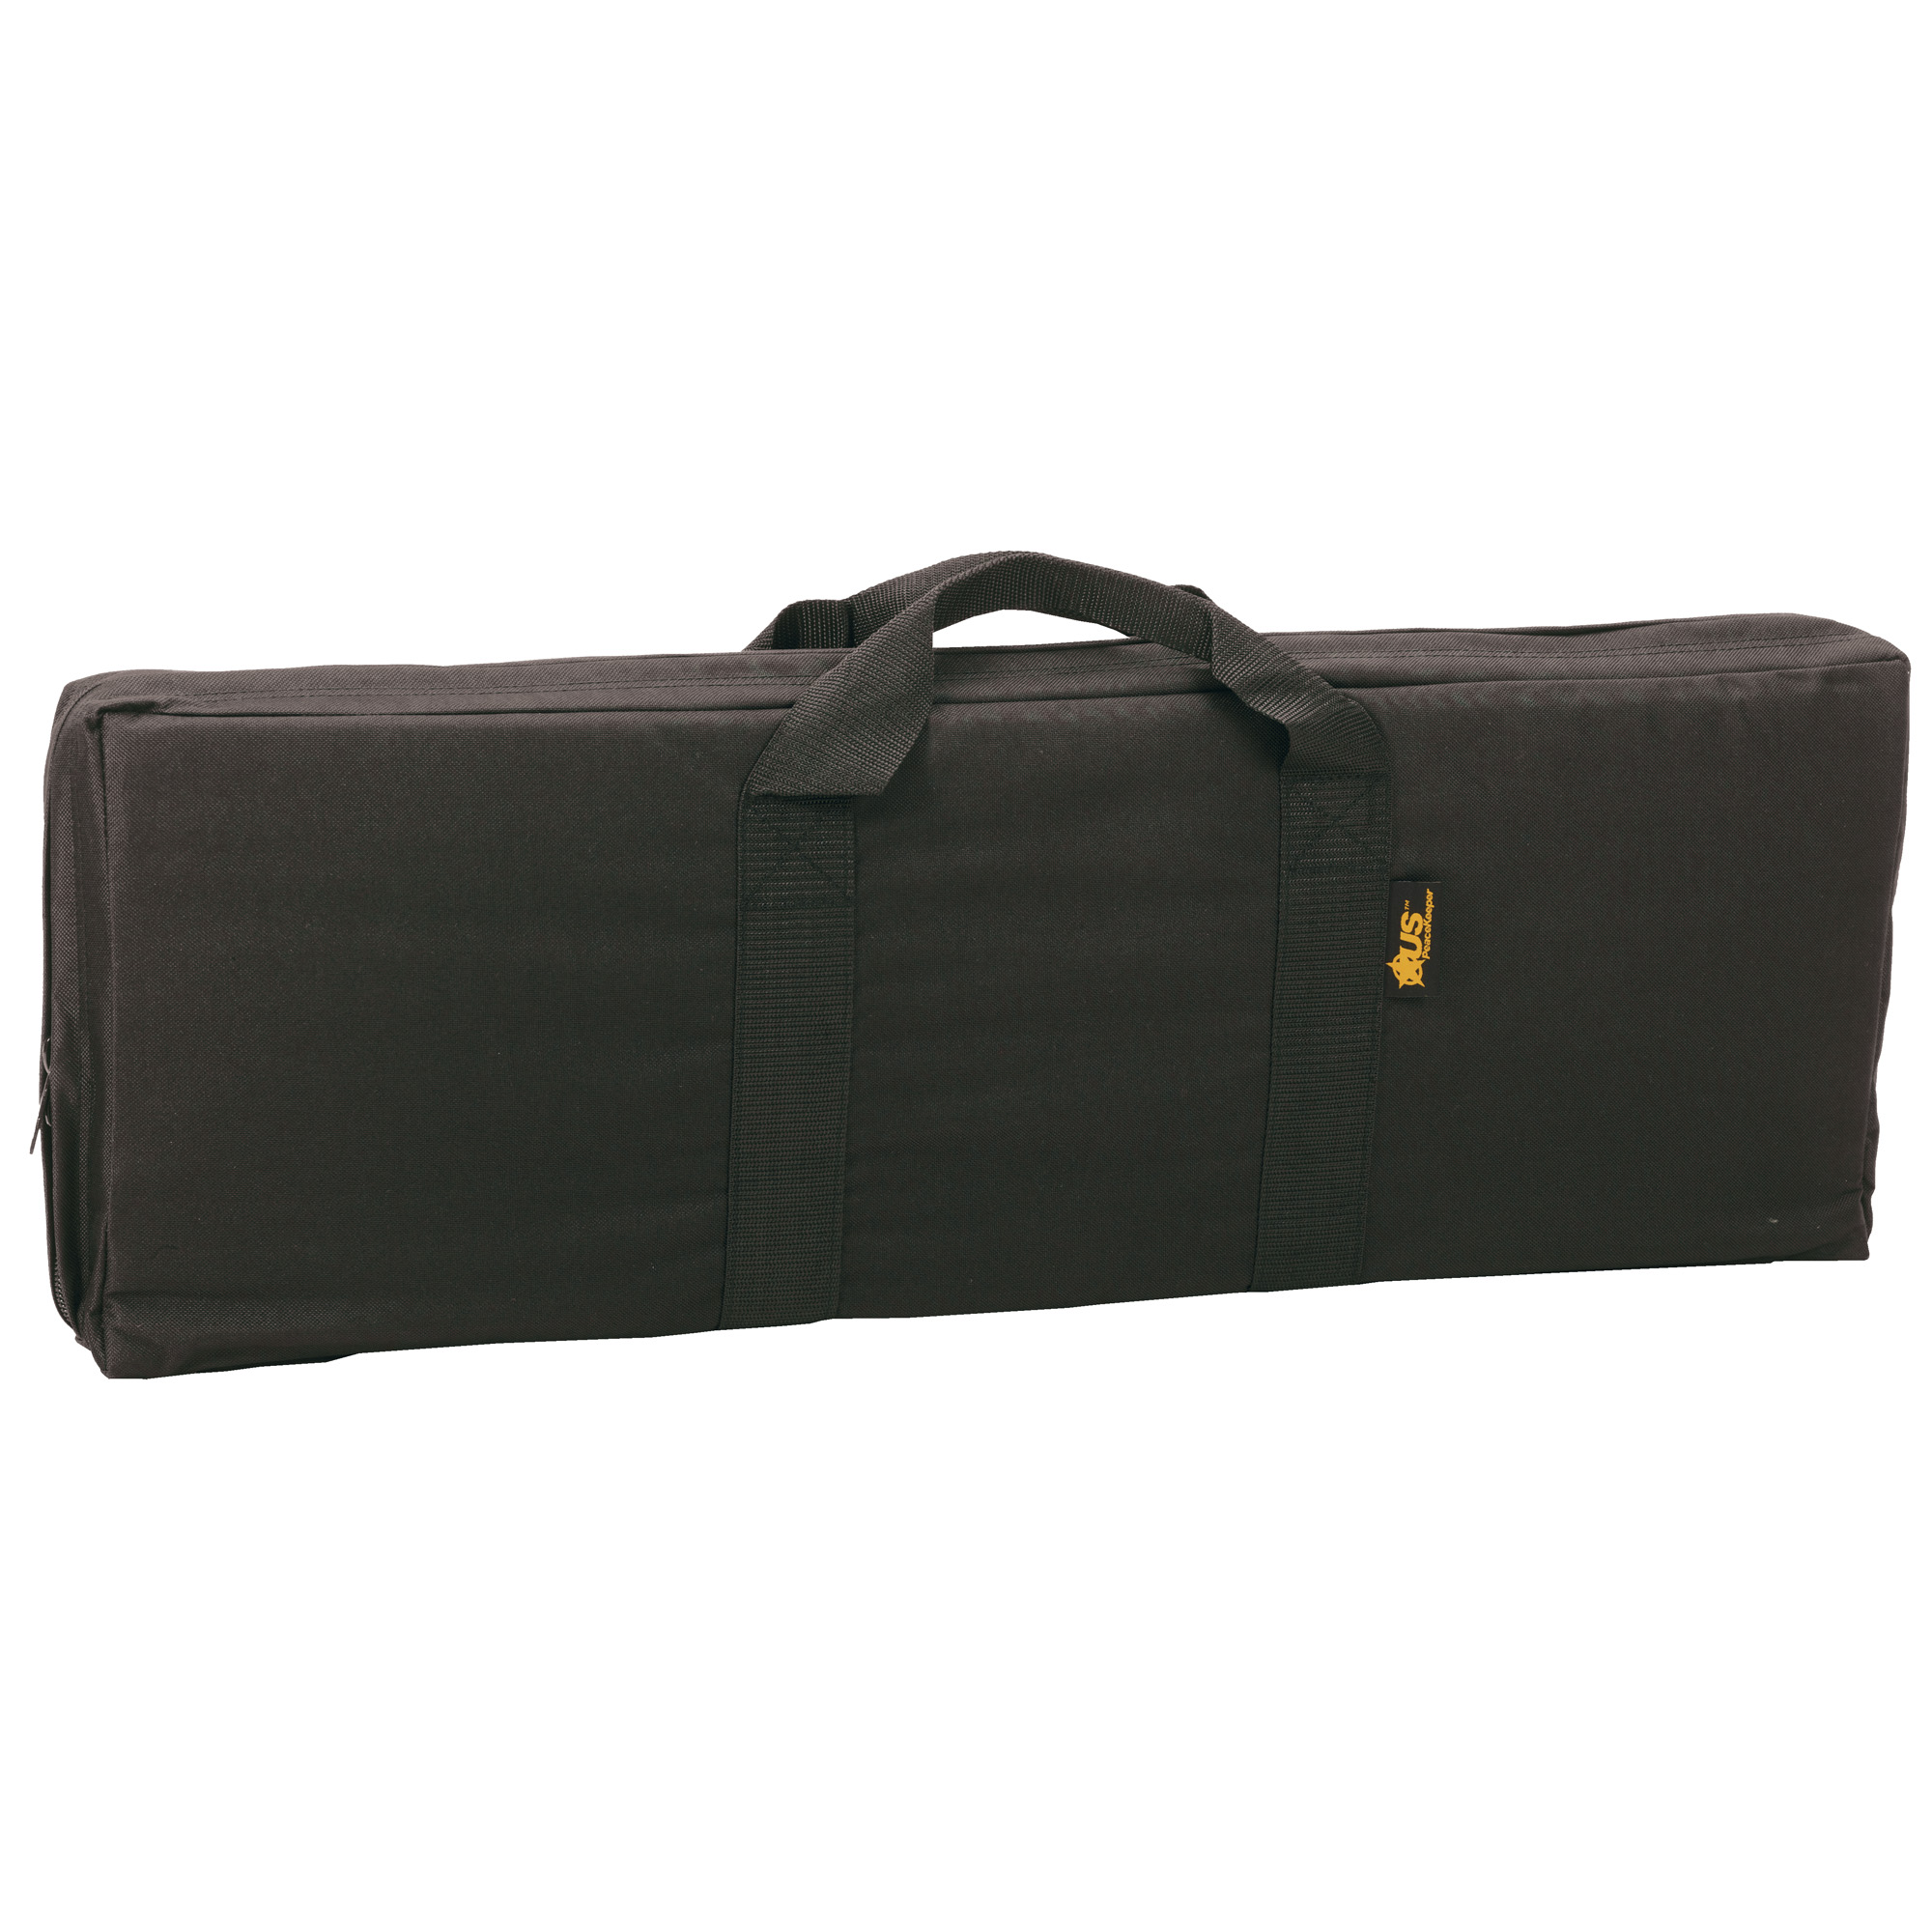 """US PeaceKeeper MRAT Case is designed for a M4 or similar length carbine with collapsible stock. Specifically designed for officers who have limited space in their vehicles. Same quality as the US PeaceKeeper RAT cases but with no outside pocket. In main compartment"""" (2) wide elastic straps to carry two (2) rifle magazines (double-stacked) and removable hook and loop straps to secure carbine. Wrap-around handle for easy carry."""